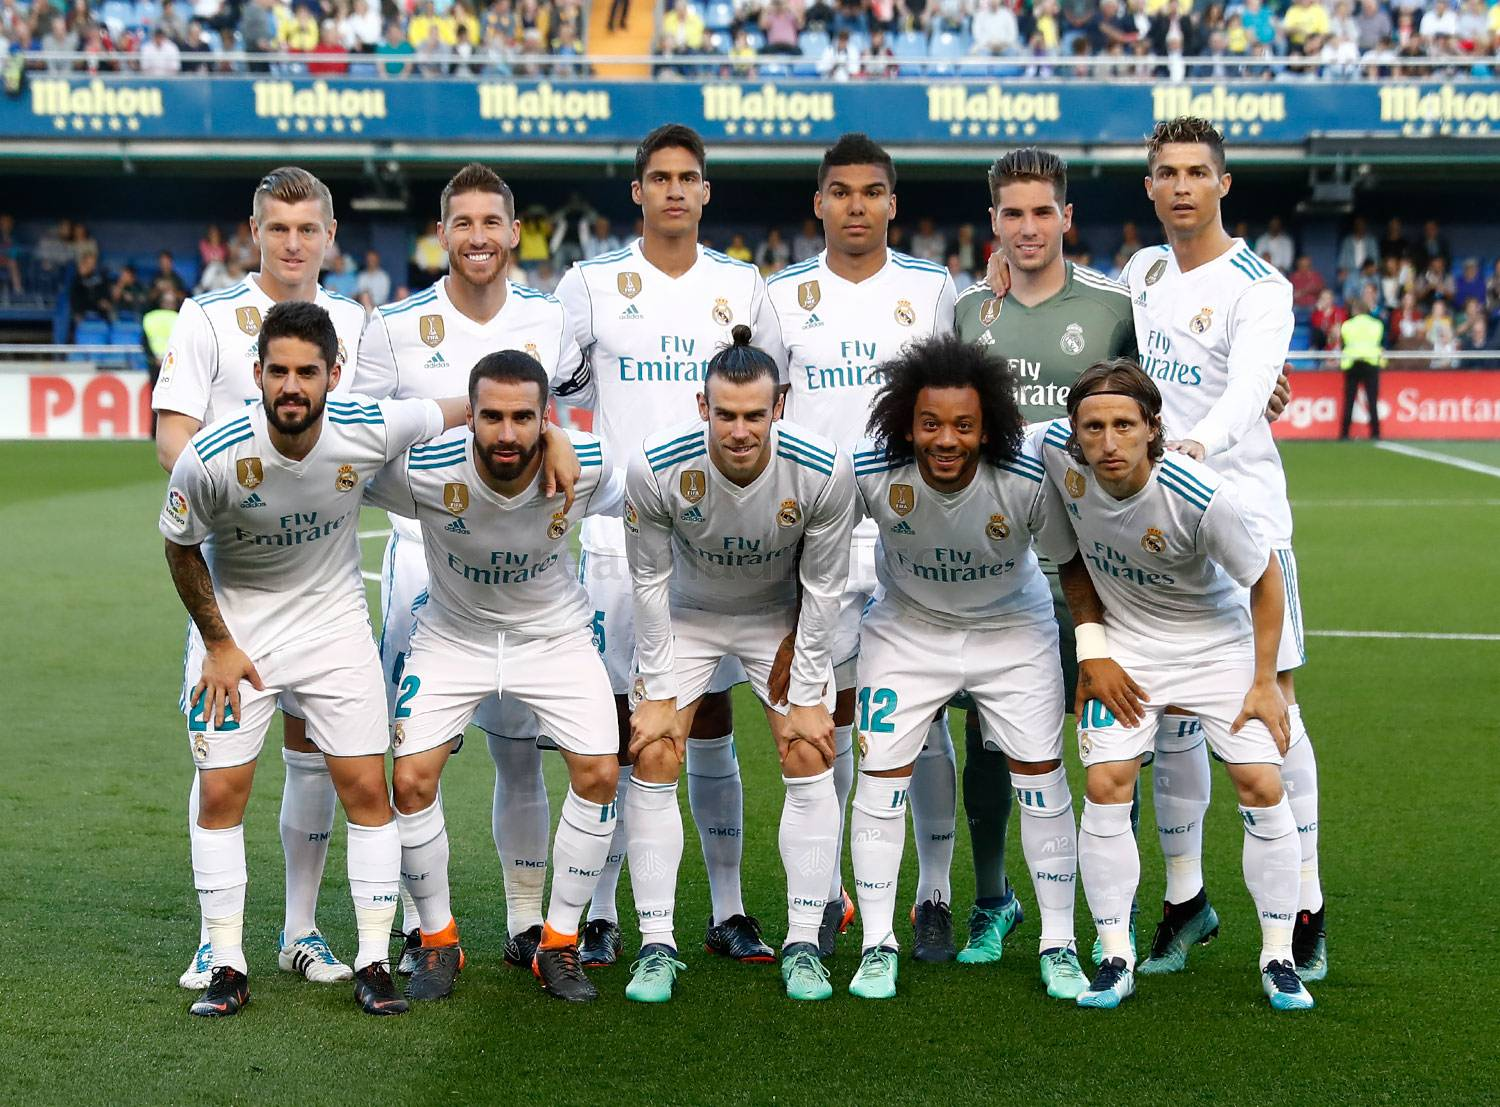 Real Madrid - Villarreal - Real Madrid  - 19-05-2018